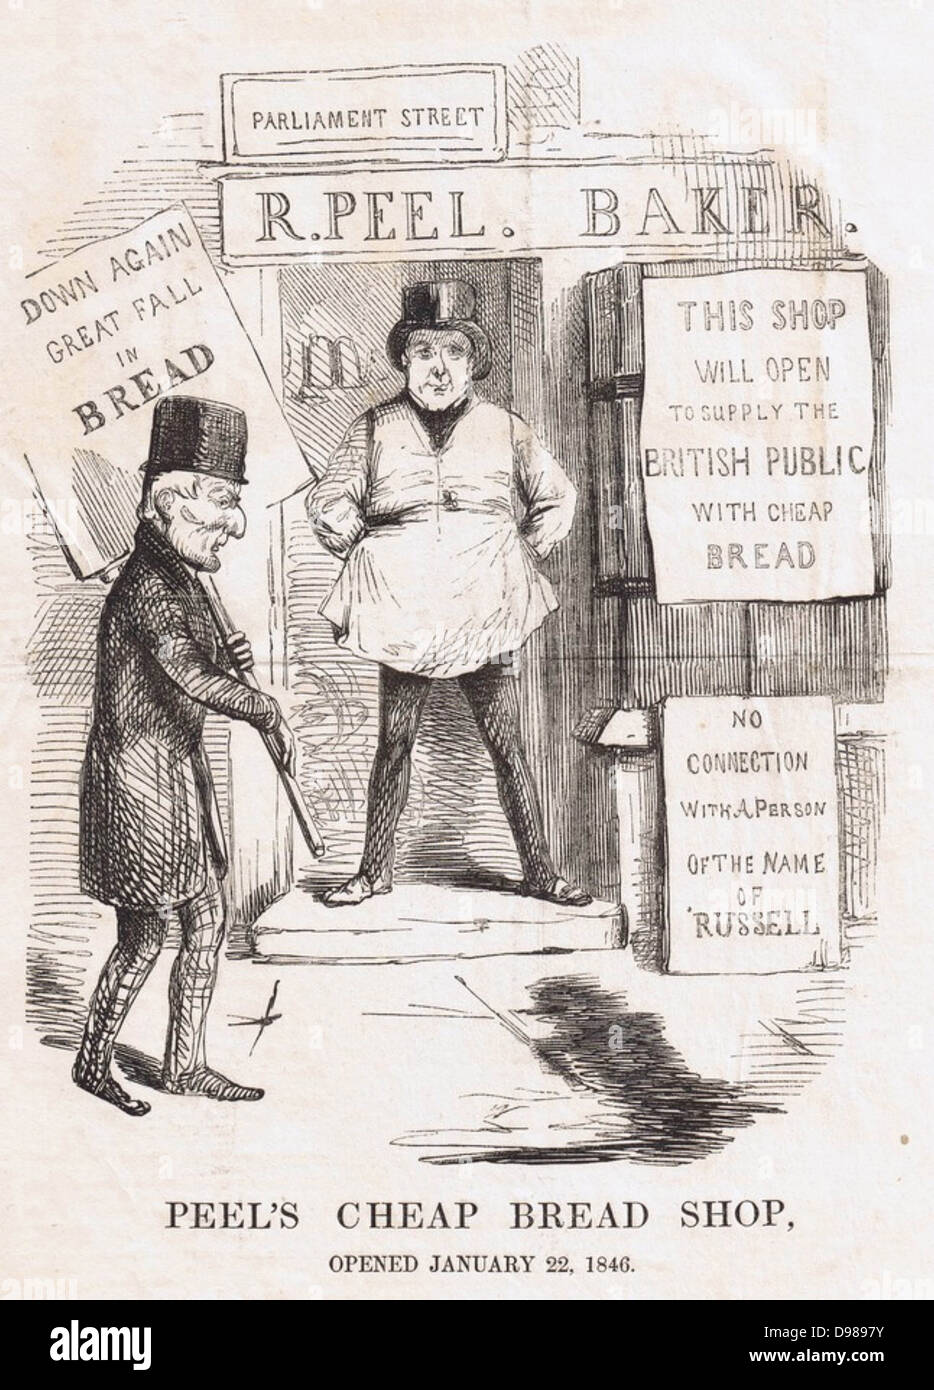 Robert Peel, Prime Minister, as a Baker, Duke of Wellington carrying advertising placard. From 1815 to 1846 Corn - Stock Image